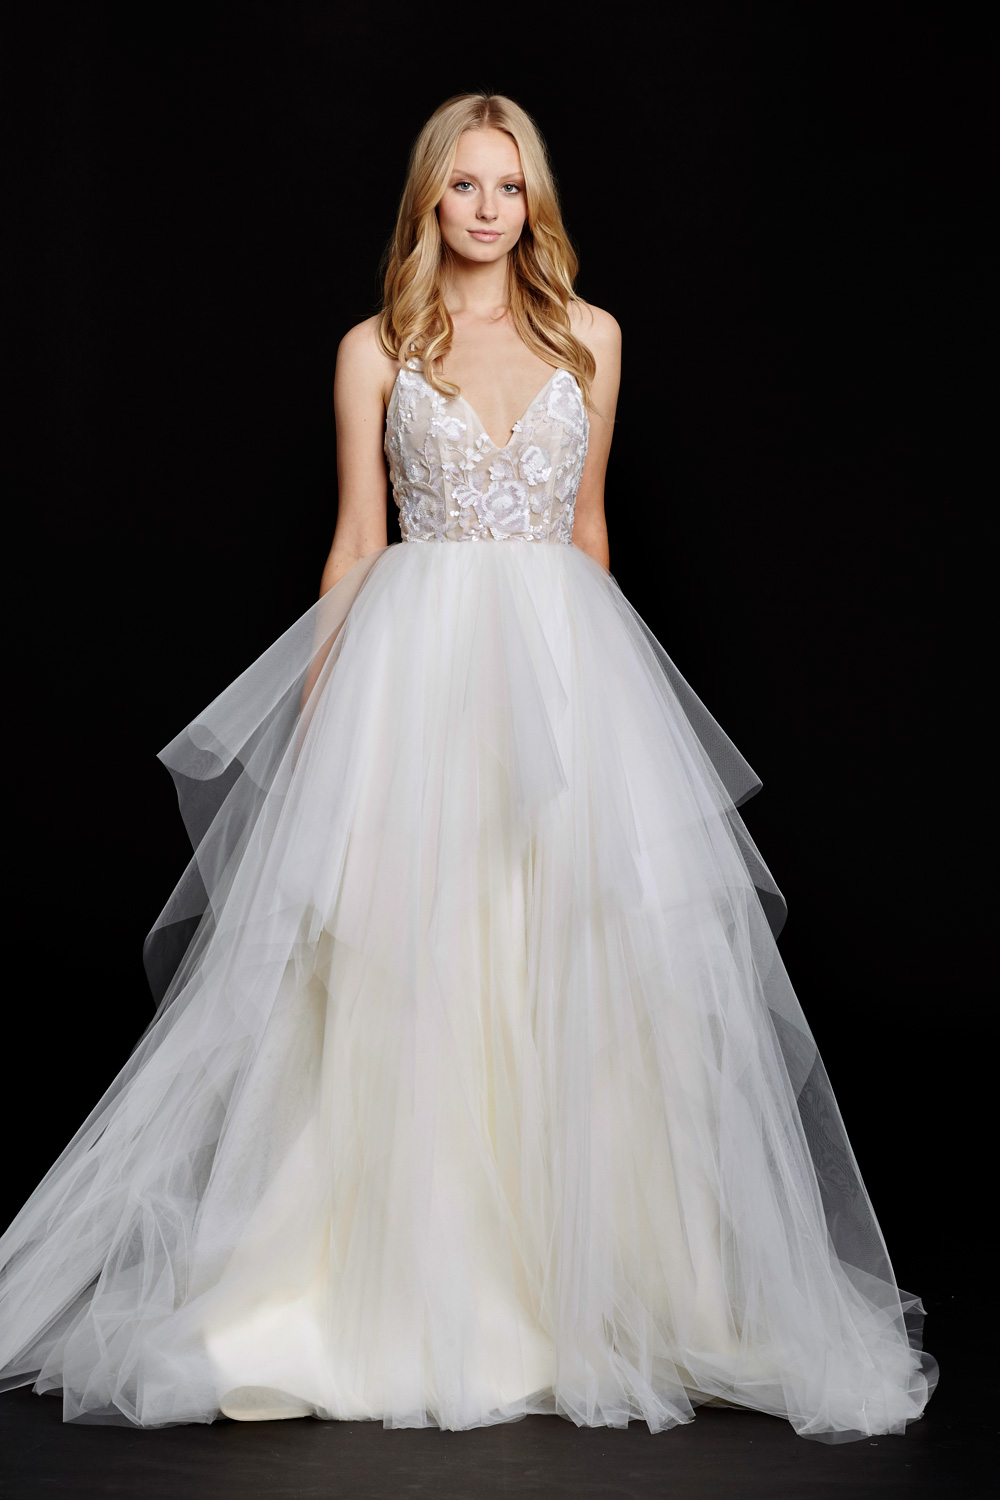 A Silhouette Guide To Finding The Perfect Wedding Dress